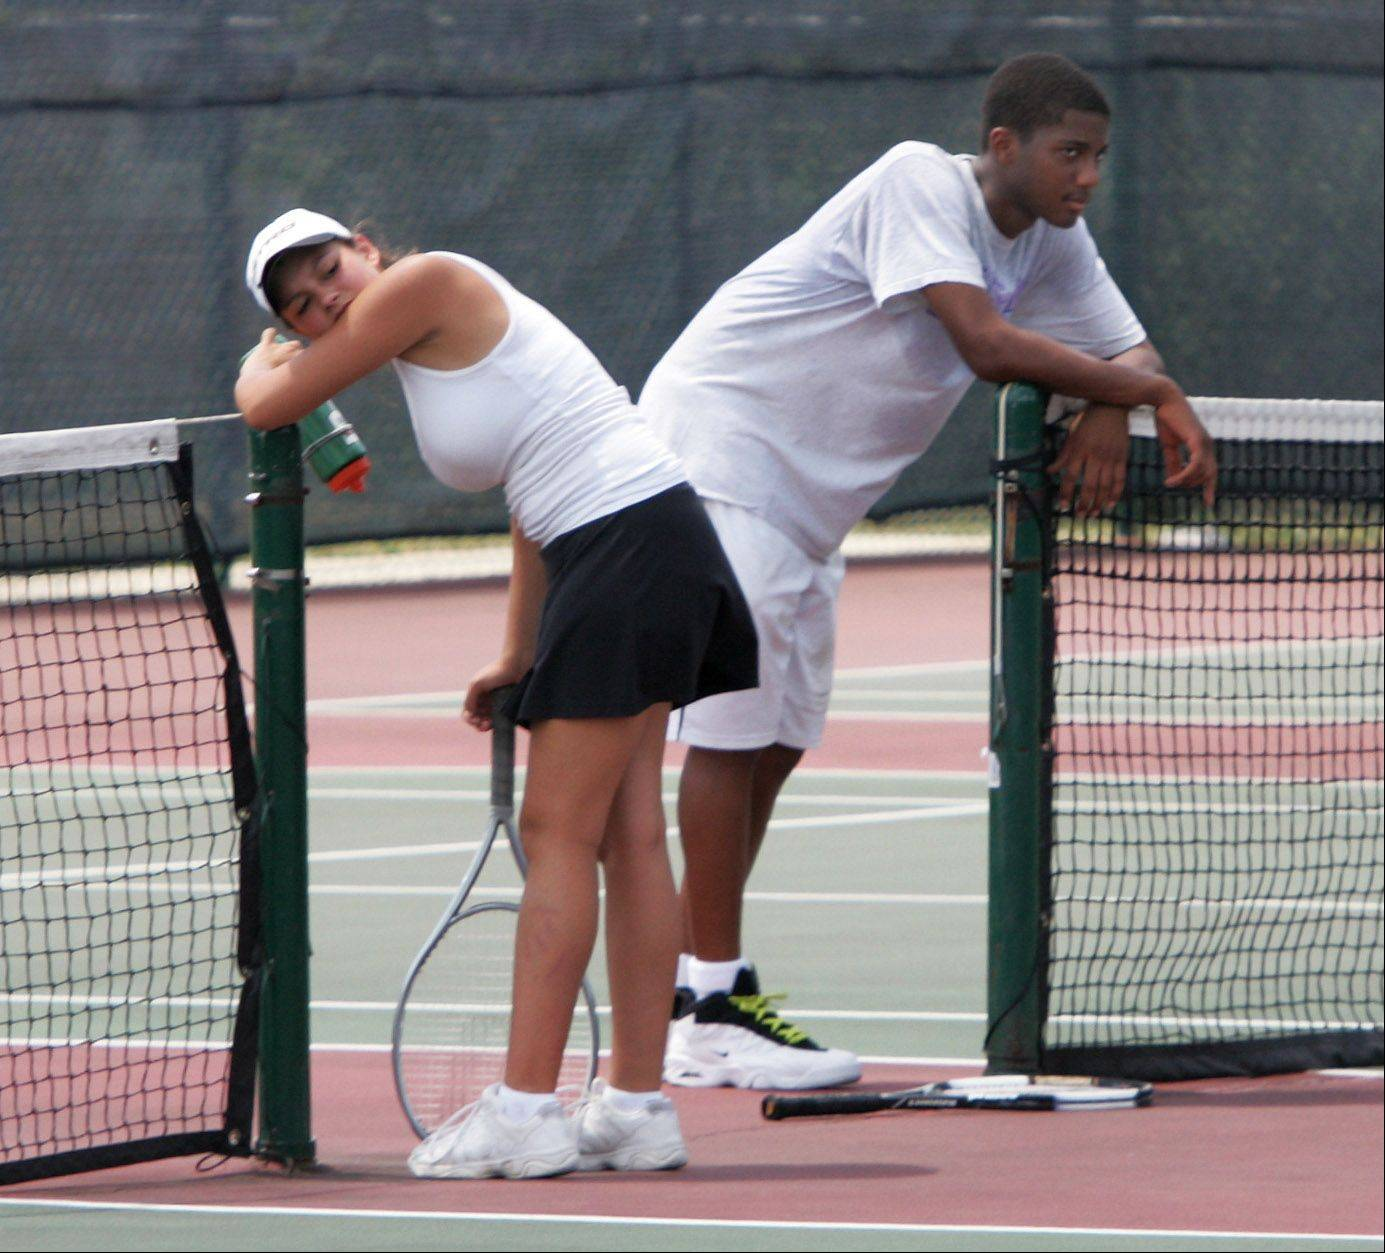 Nicole Garcia, 17, left, and Aaron Jackson, 18, are exhausted after coaching tennis at Grayslake Central High School's summer tennis camp Tuesday. The temperatures soared toward 100 degrees for another day, adding to the extremely hot summer.